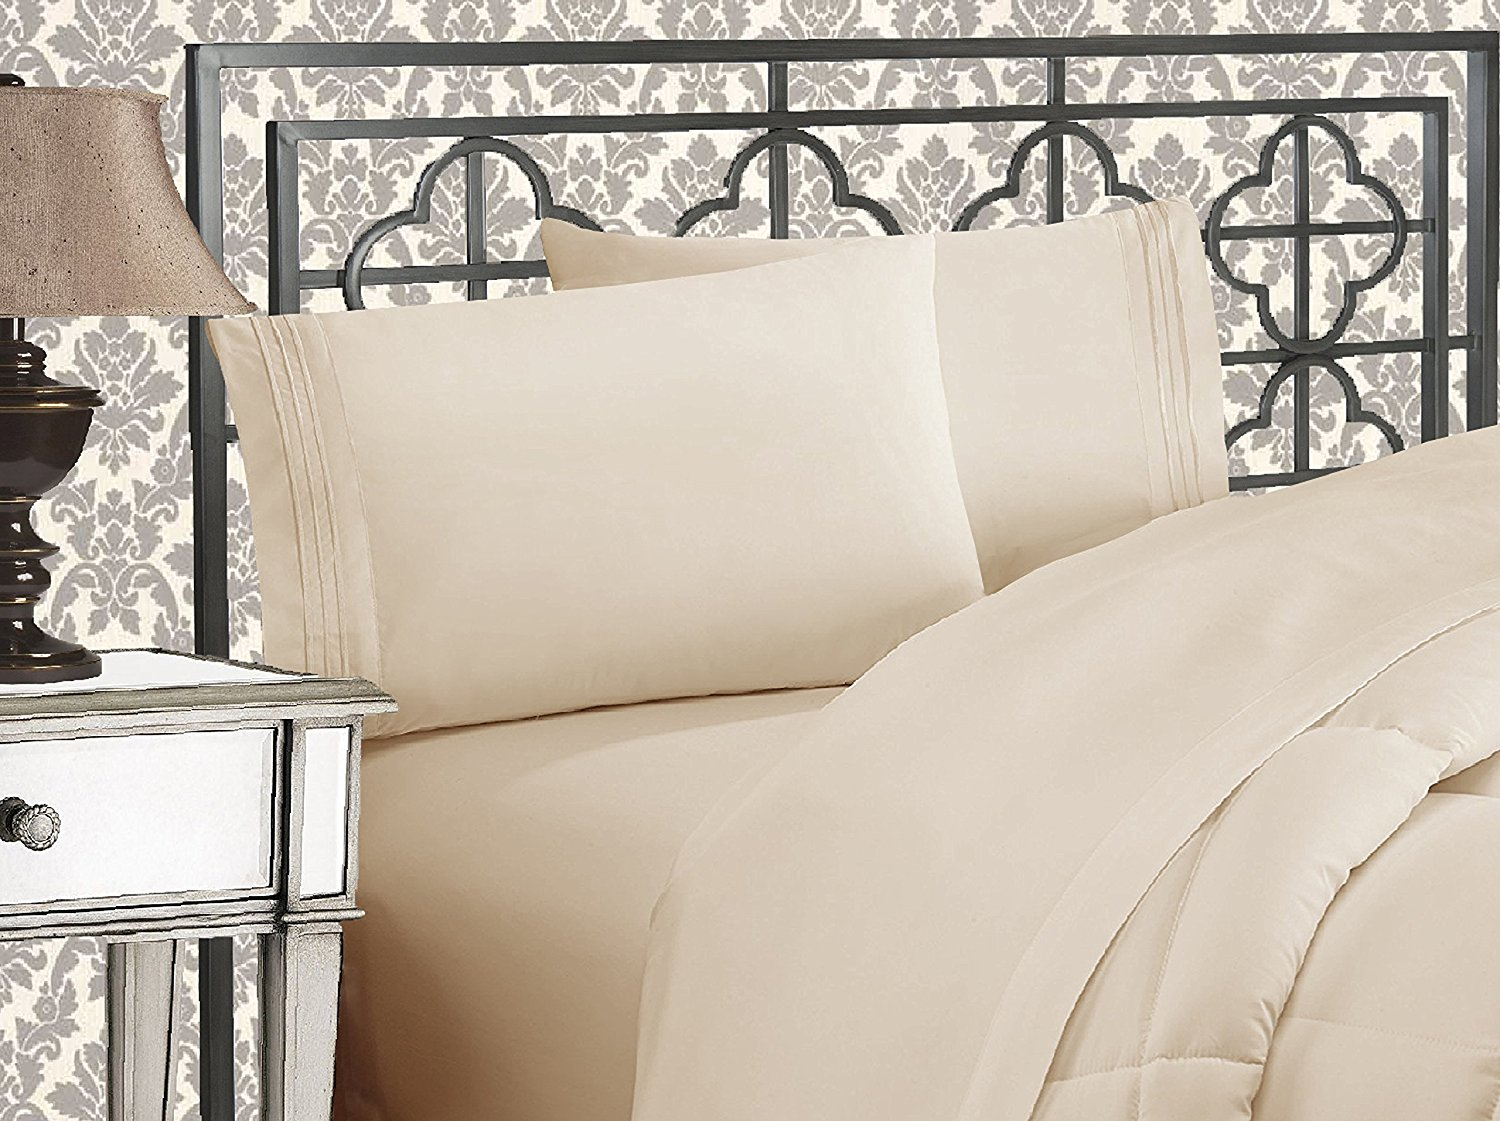 Charming Elegant Comfort® Silky Soft 1800 Series   Wrinkle Free 4 Piece Bed